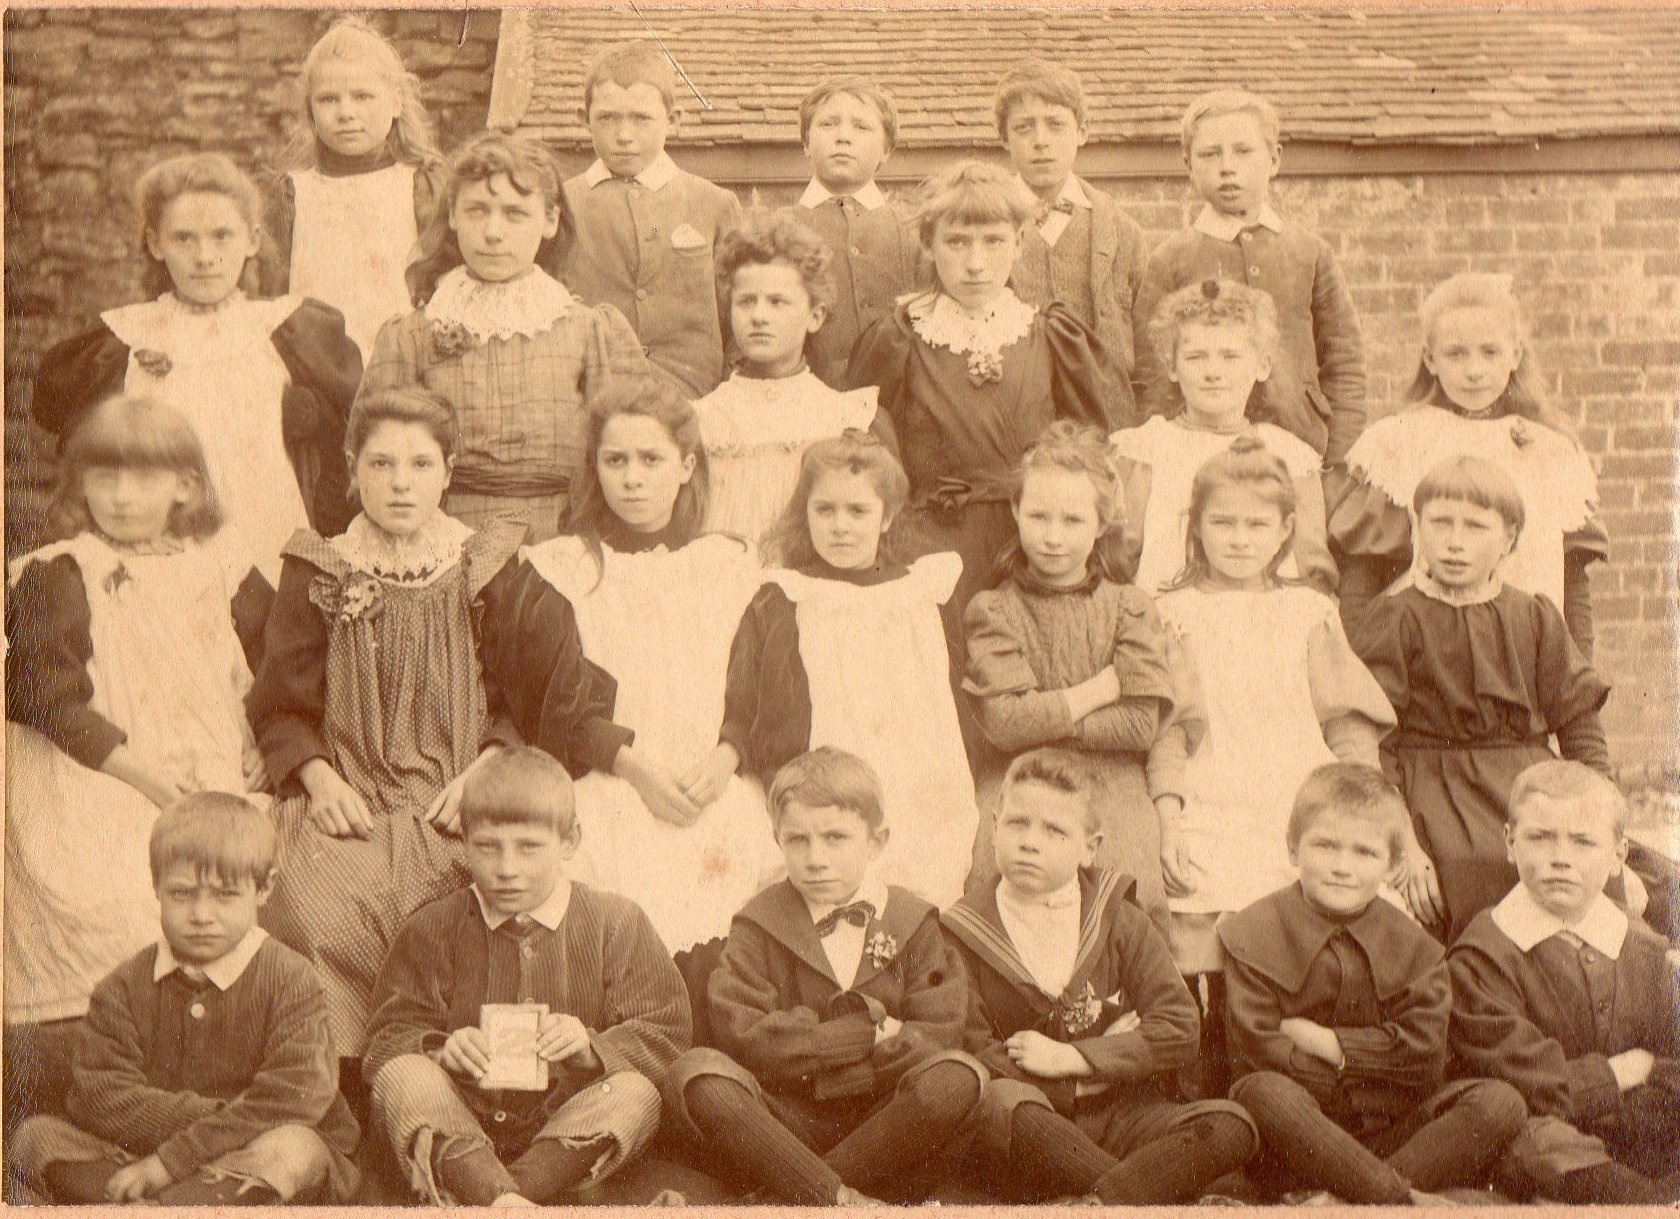 Leintwardine schoolchildren in the 1890s. Percy Malpas (born 1890) second right, and behind him are his sisters, Florence (born 1888) and Gertrude (born 1886)